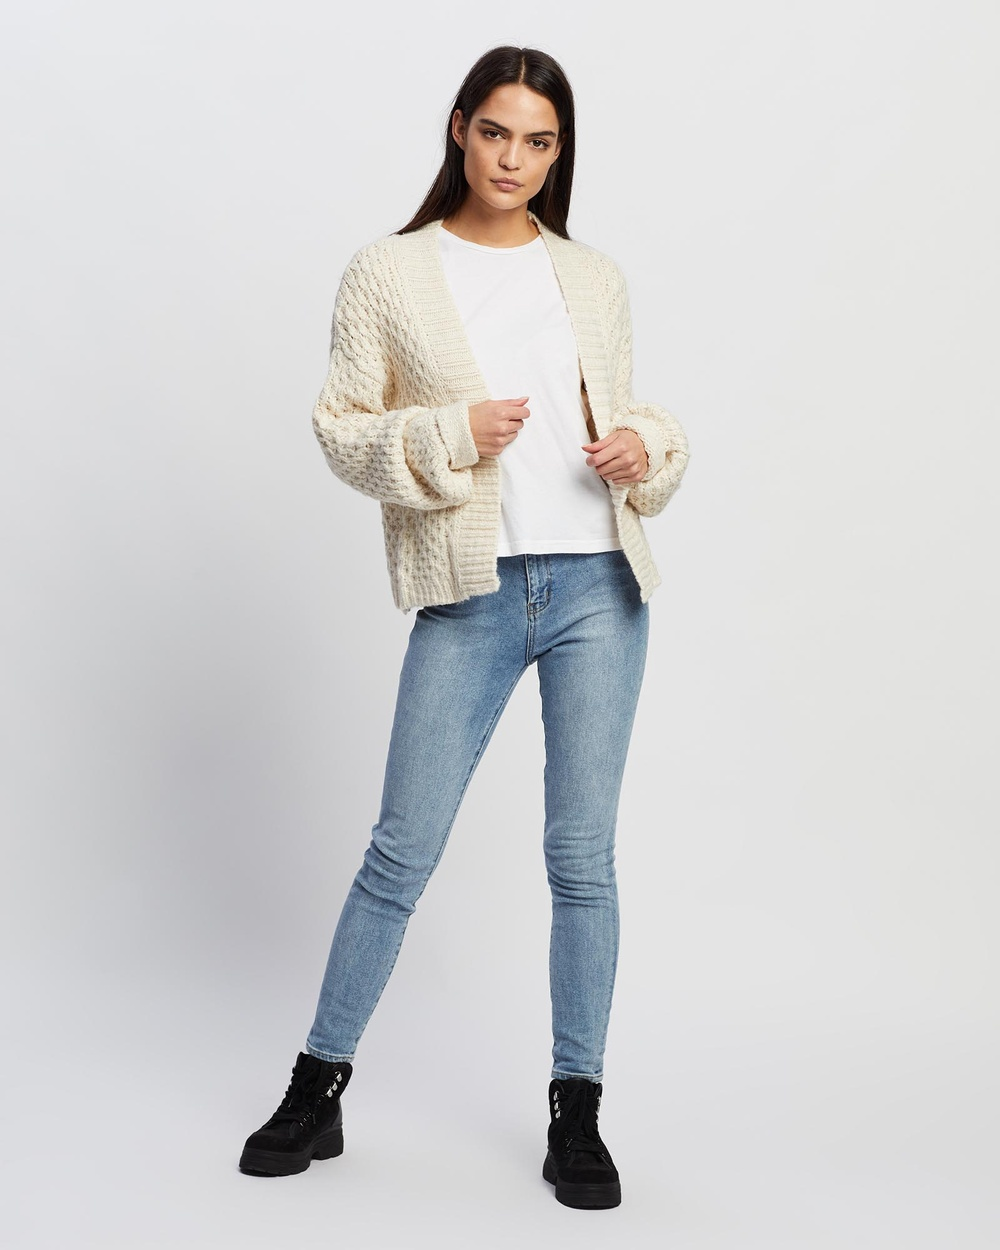 Volcom My Stitches Sweater Jumpers & Cardigans Oatmeal Australia